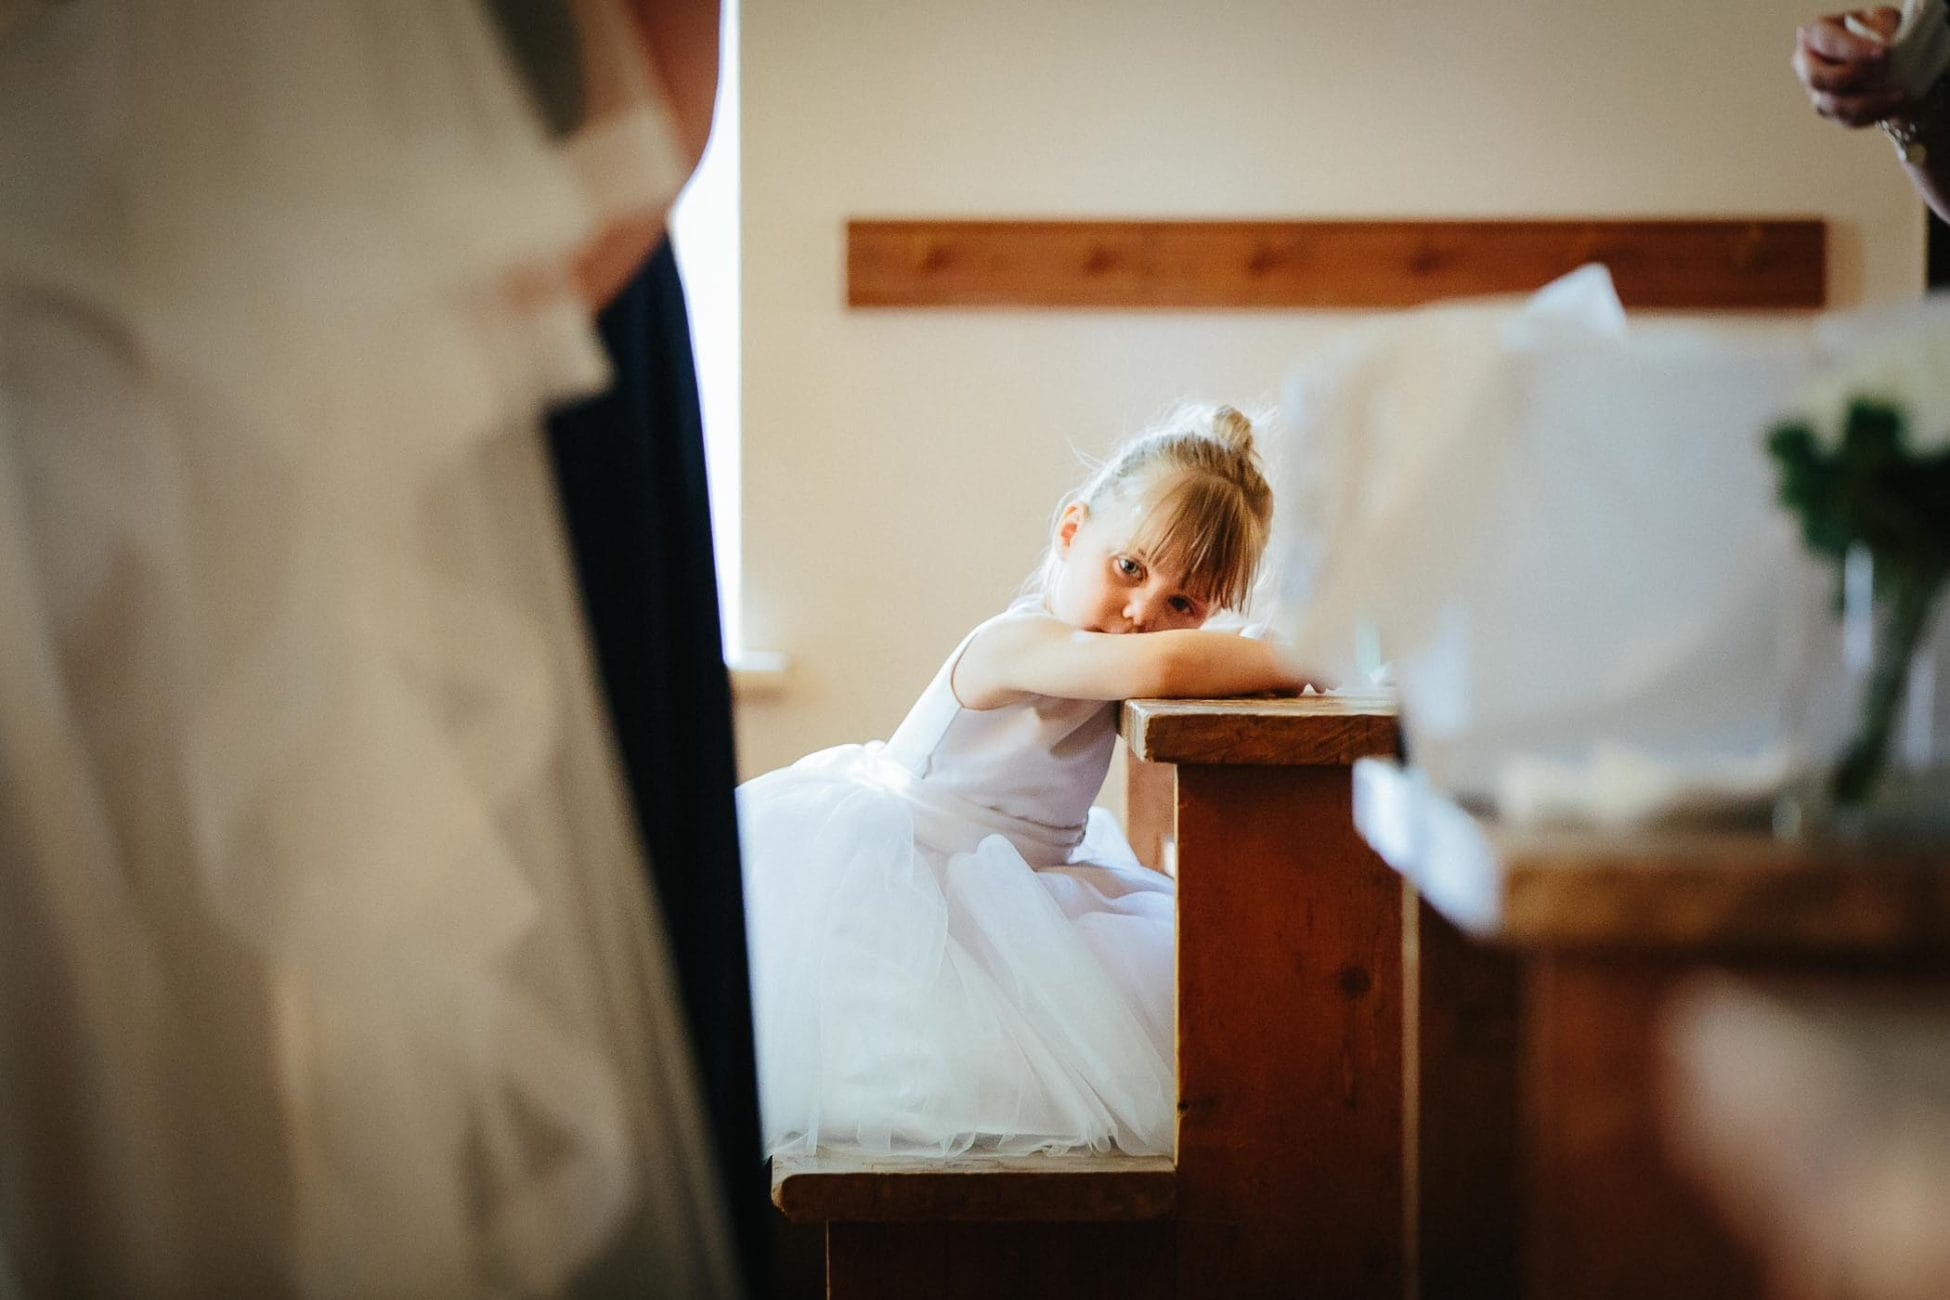 The flower girl in a white dress leaning on desk looking at Toronto wedding photographer Pavel Kounine at this Enoch Turner Schoolhouse wedding ceremony.